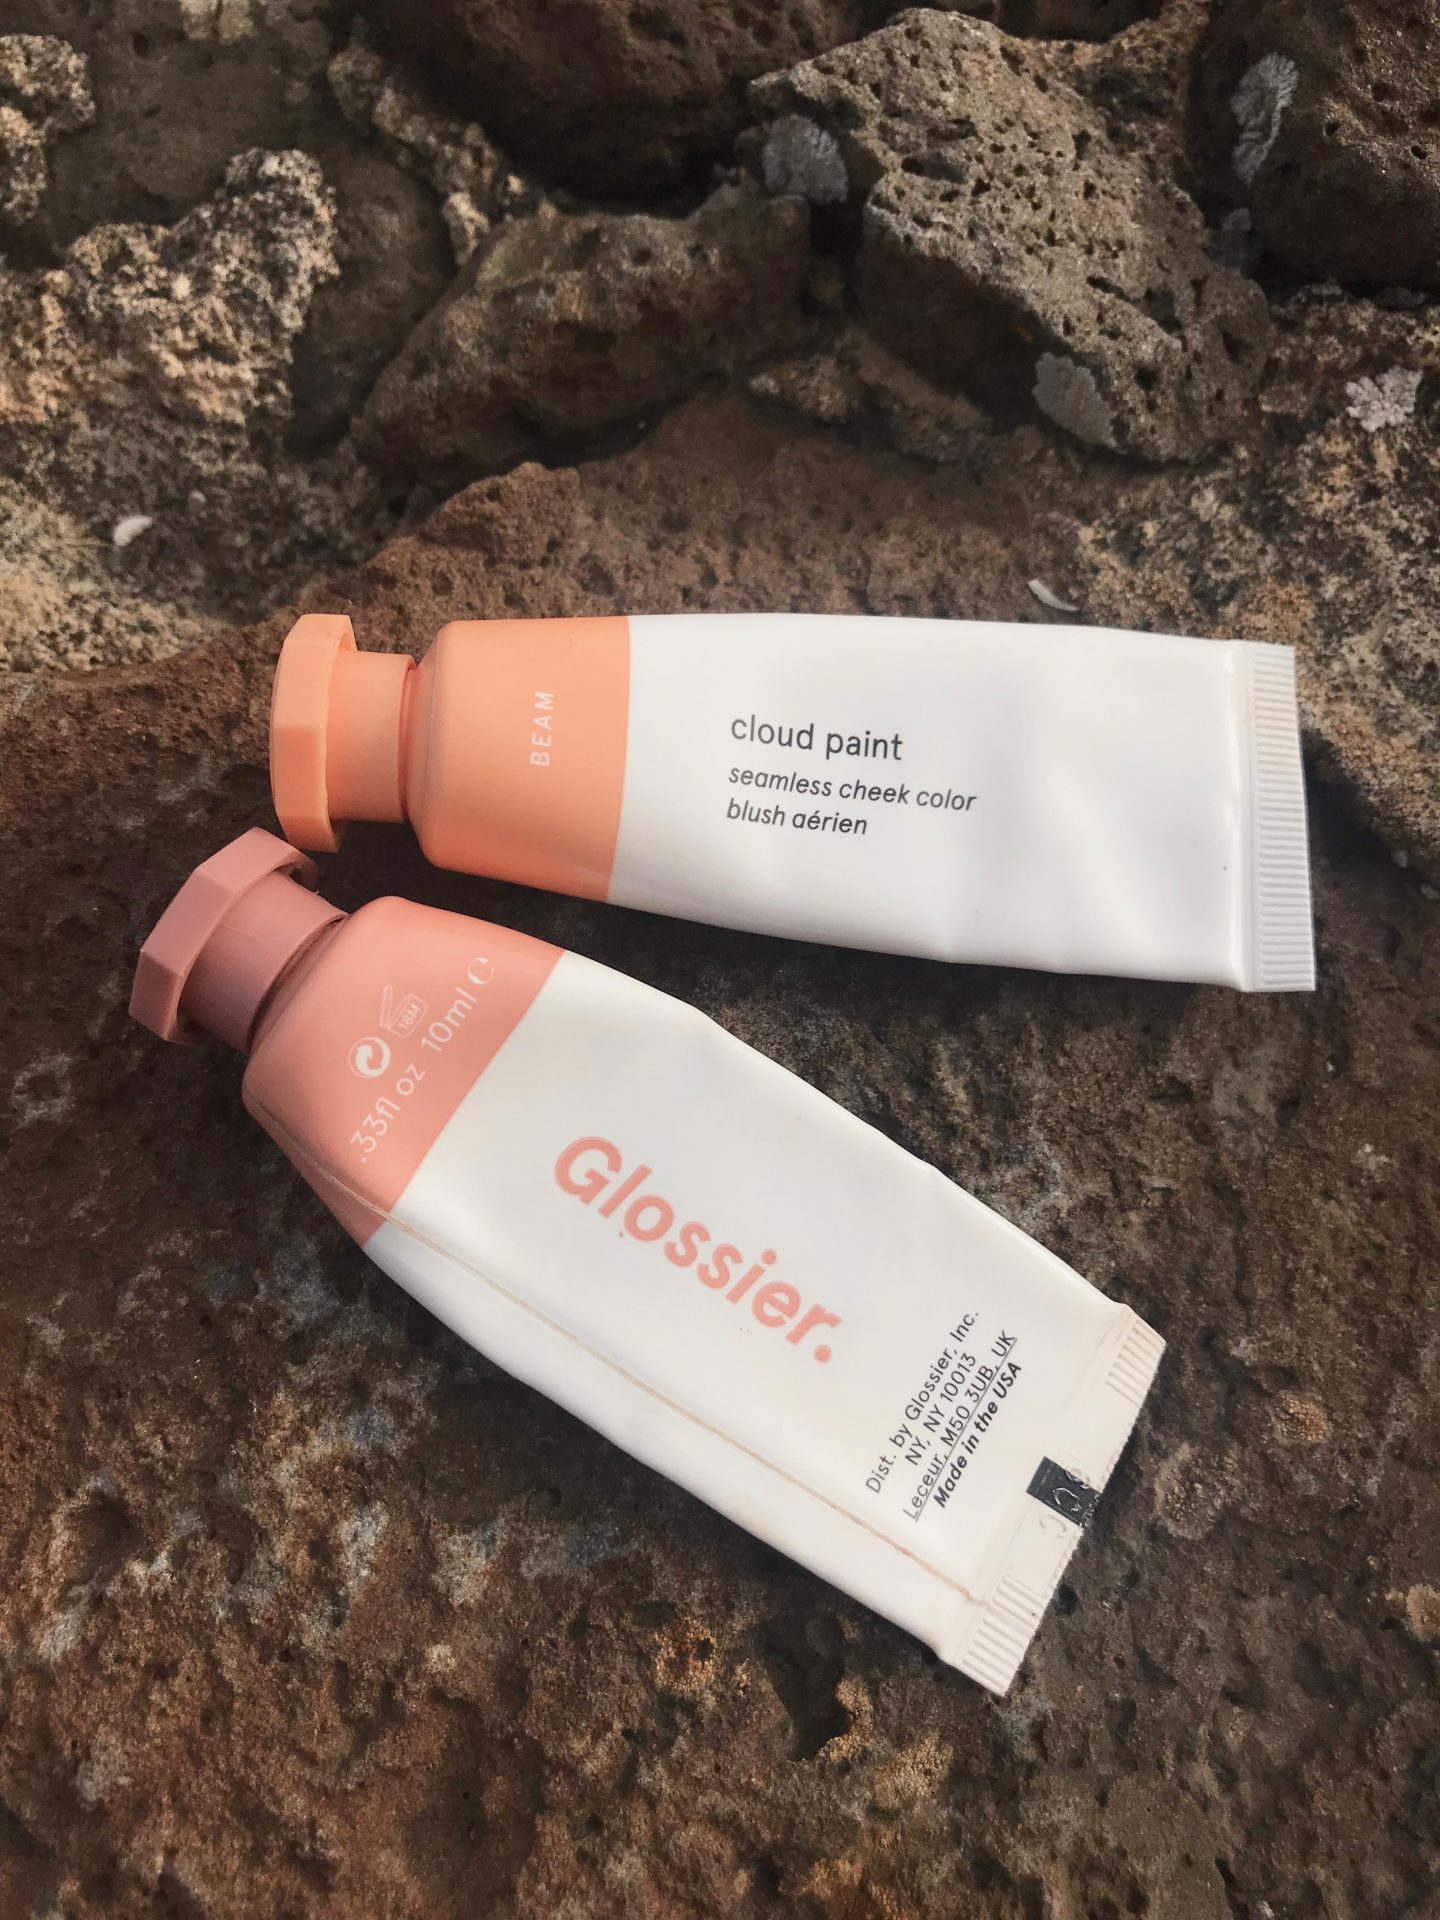 Glossier Is It Still Worth The Hype?